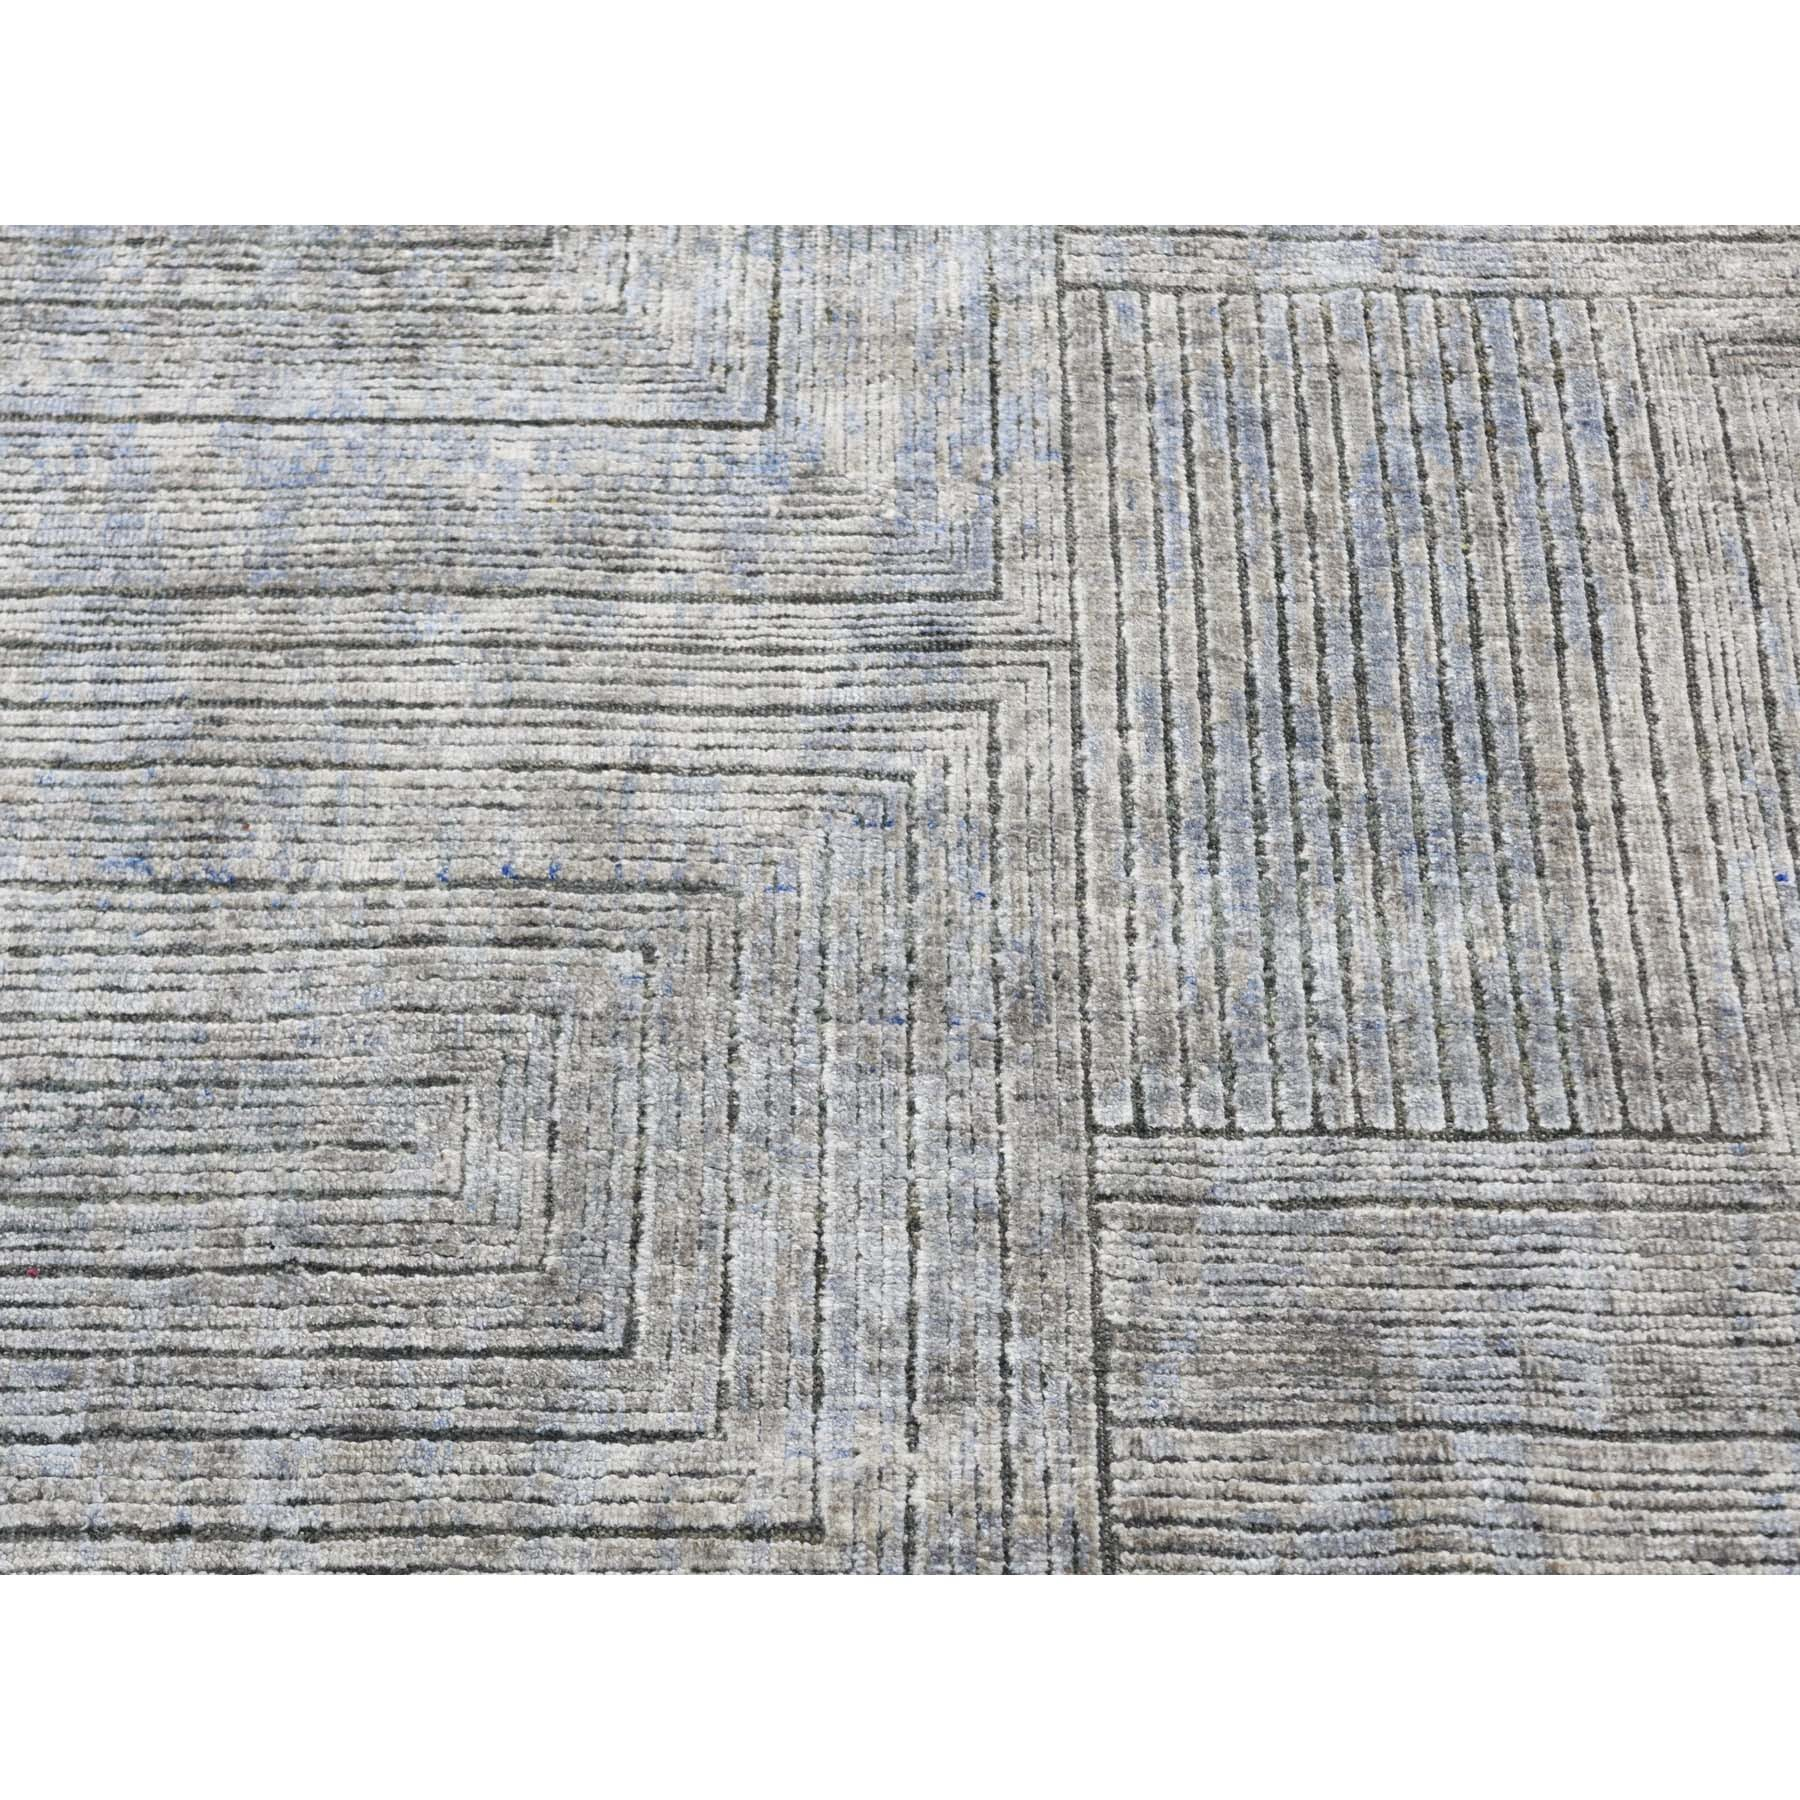 7-10 x9-10  Gray Silk With Textured Wool Maze Design Hand Knotted Oriental Rug